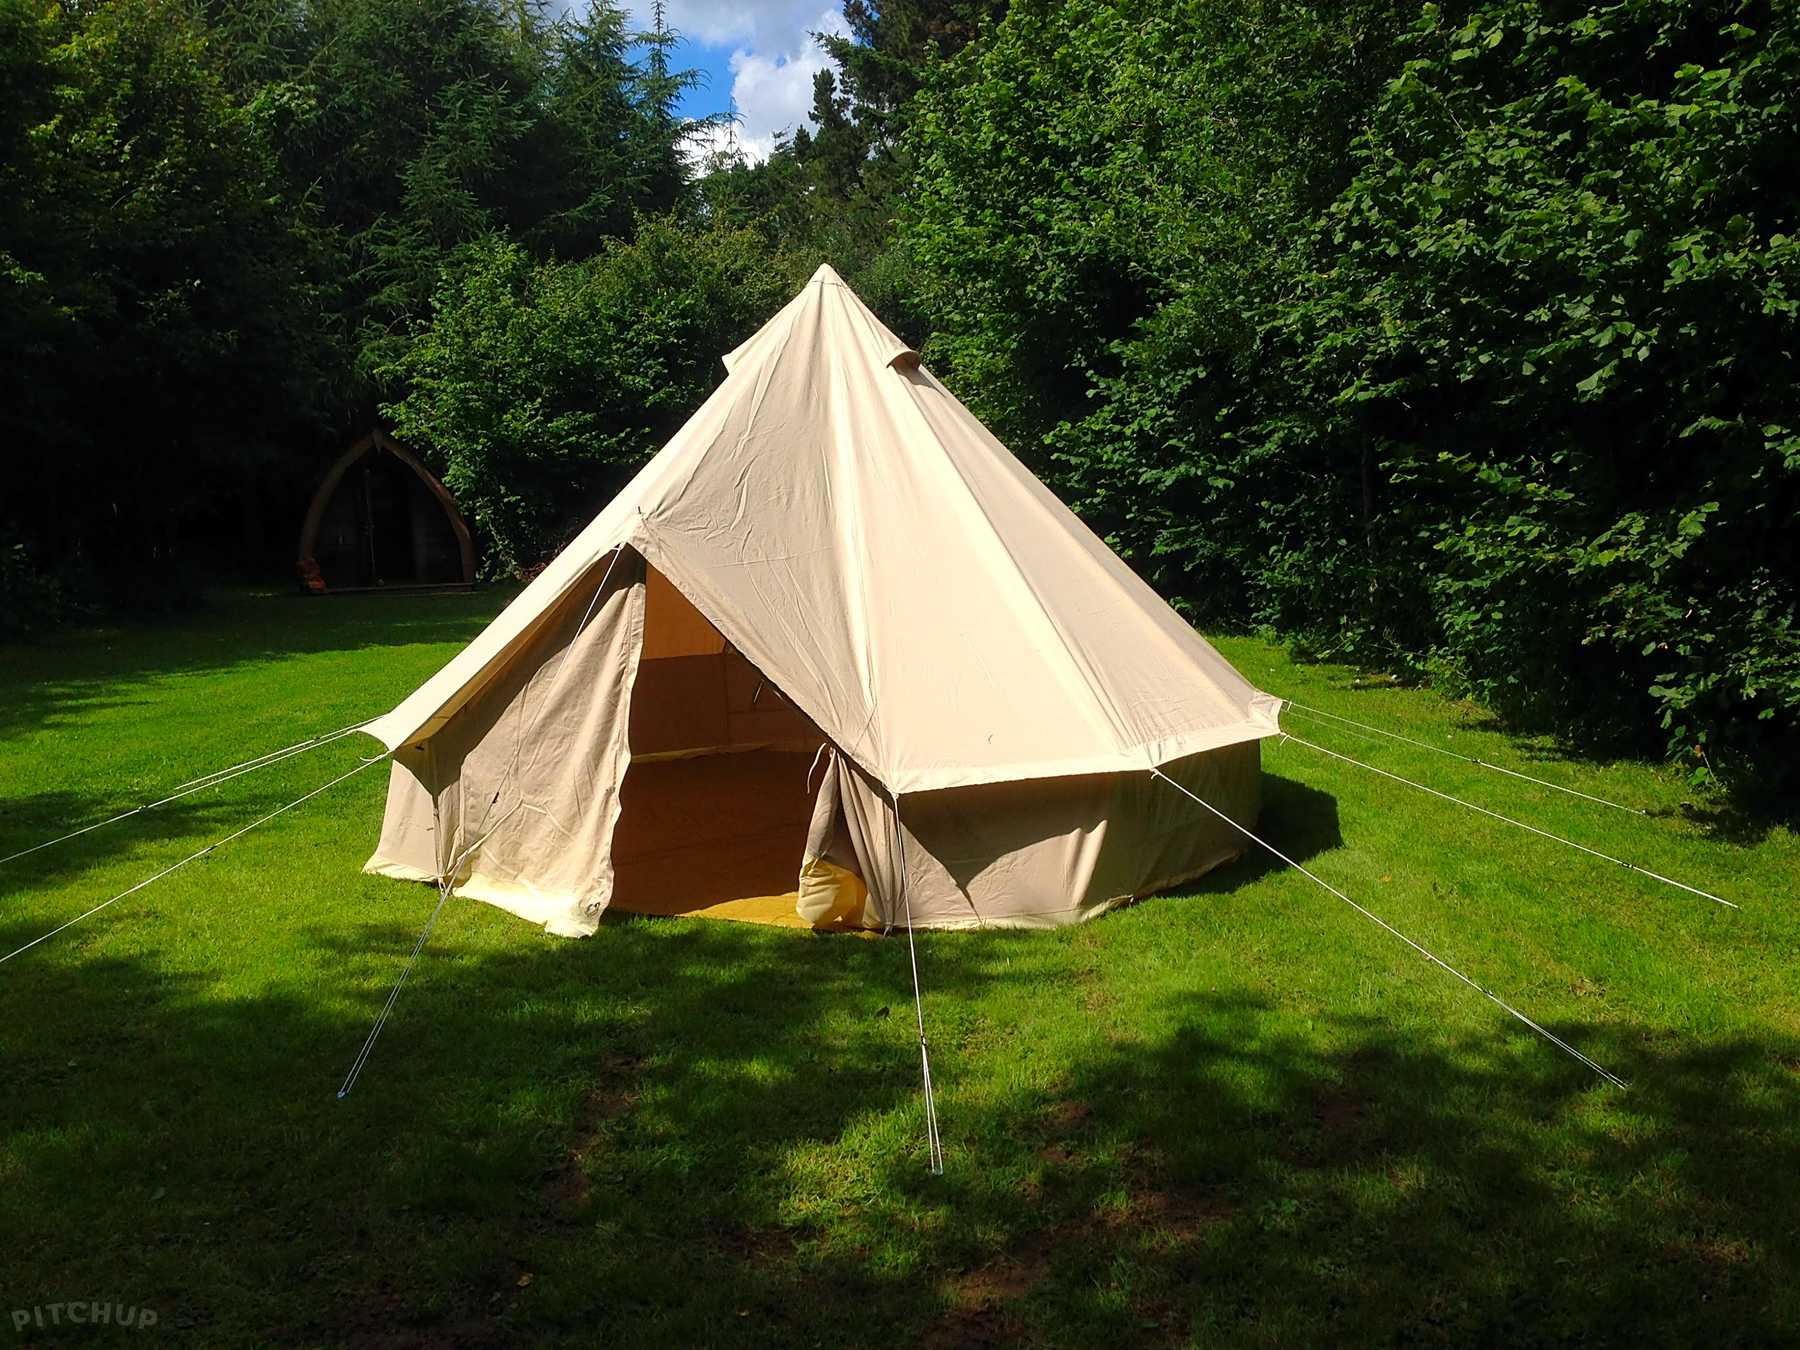 Find Cheap Tent Camping Sites in Derby, Derbyshire - Pitchup